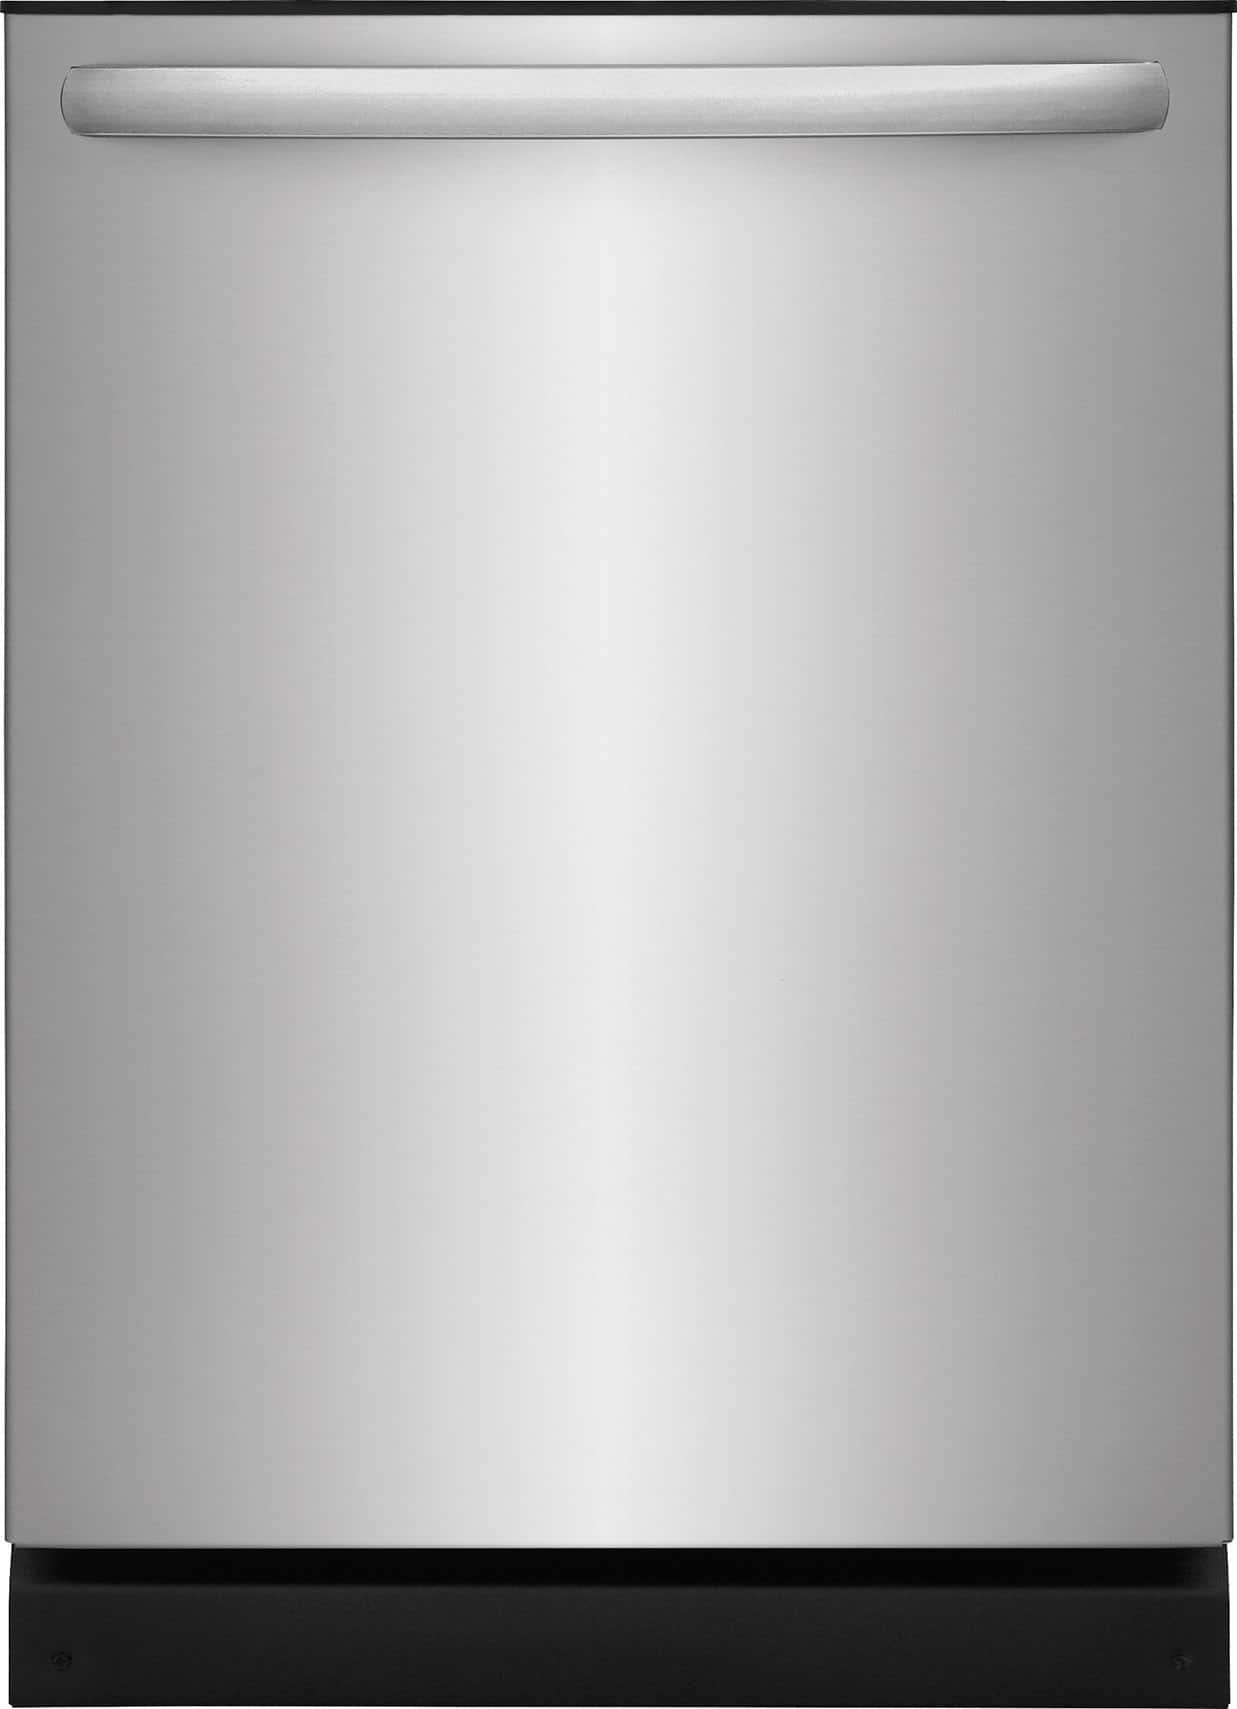 Frigidaire 24 in. Built-In Tall Tub Top Control Dishwasher in Stainless Steel, 54 dBA $273 AR + Free Shipping